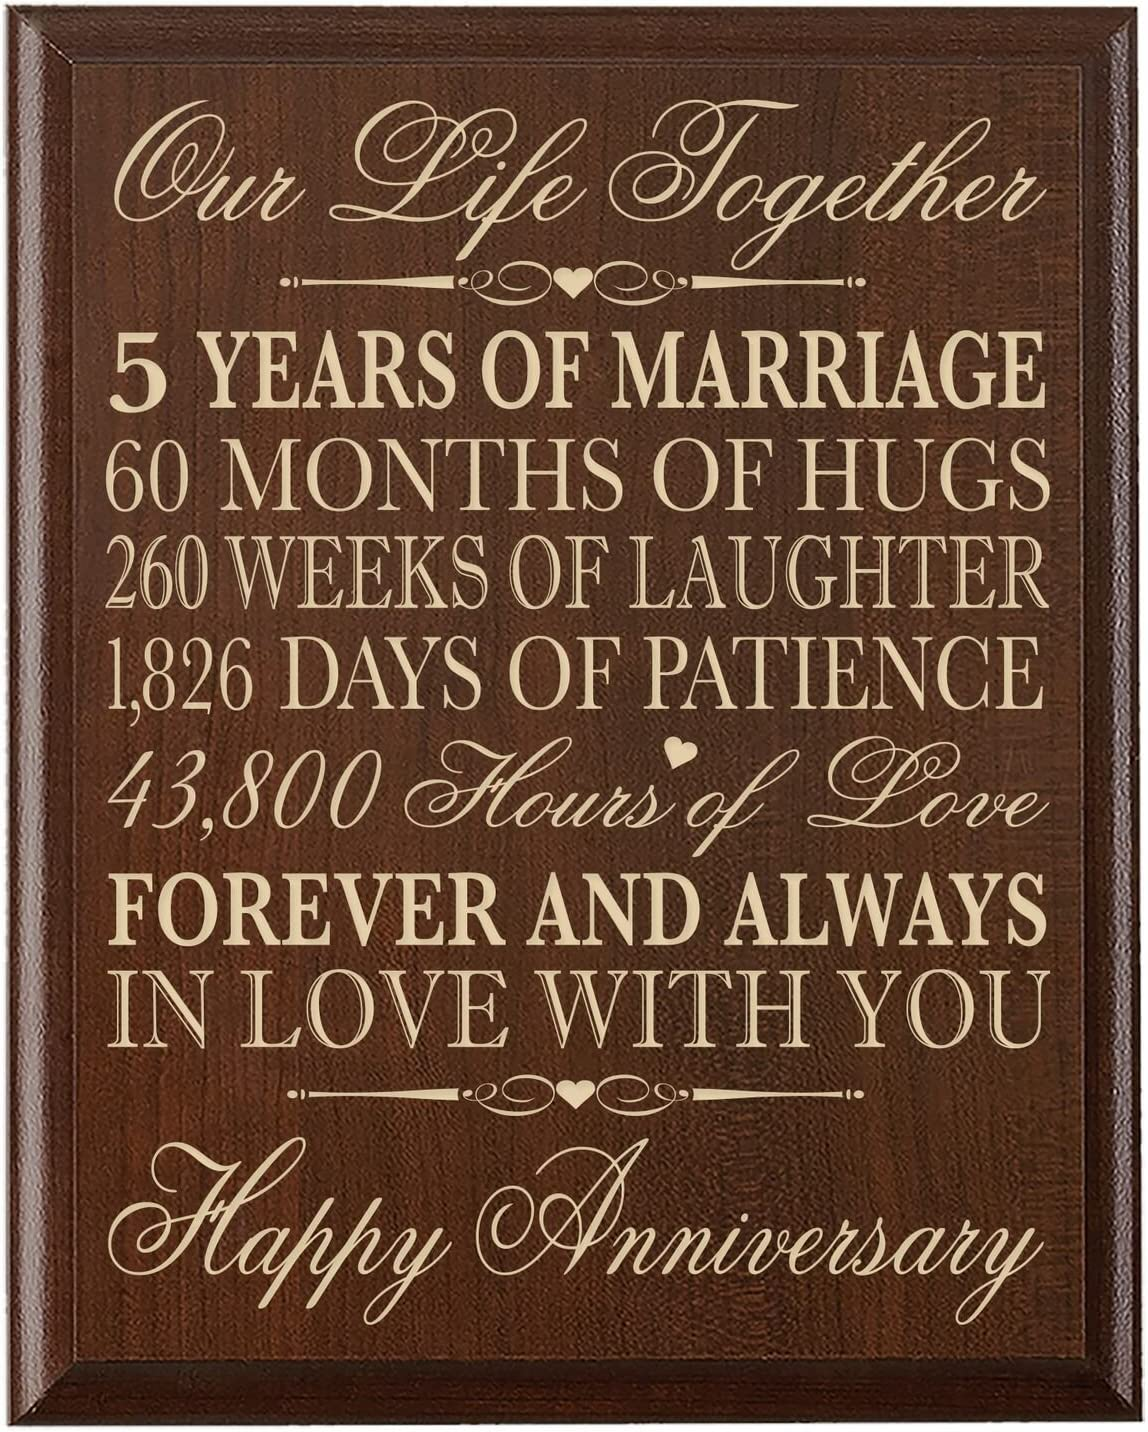 LifeSong Milestones 10th Wedding Anniversary Cherry Wall Plaque Gifts for  Couple, 10th for Her,10th Wedding for Him 10 inches Wide X 110 inches high  Wall